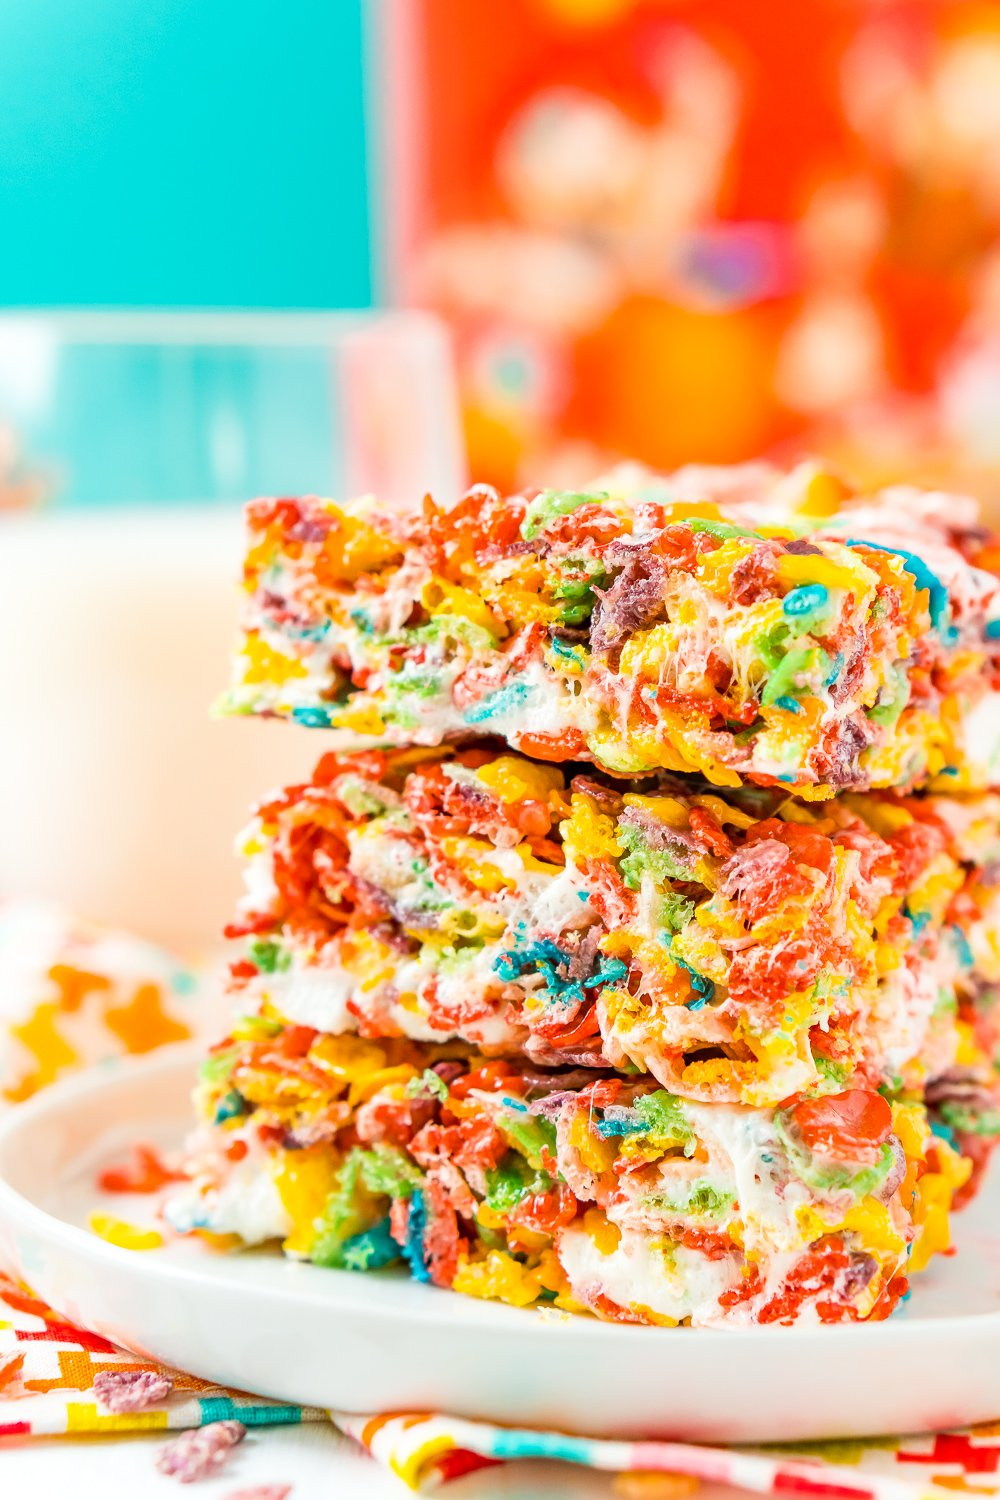 These Fruity Pebbles Treats are a fun and fruity twist on the classic no-bake dessert made with Rice Krispies cereal. They are made with the perfect blend of cereal, butter, and marshmallows and take just 7 minutes to prepare!